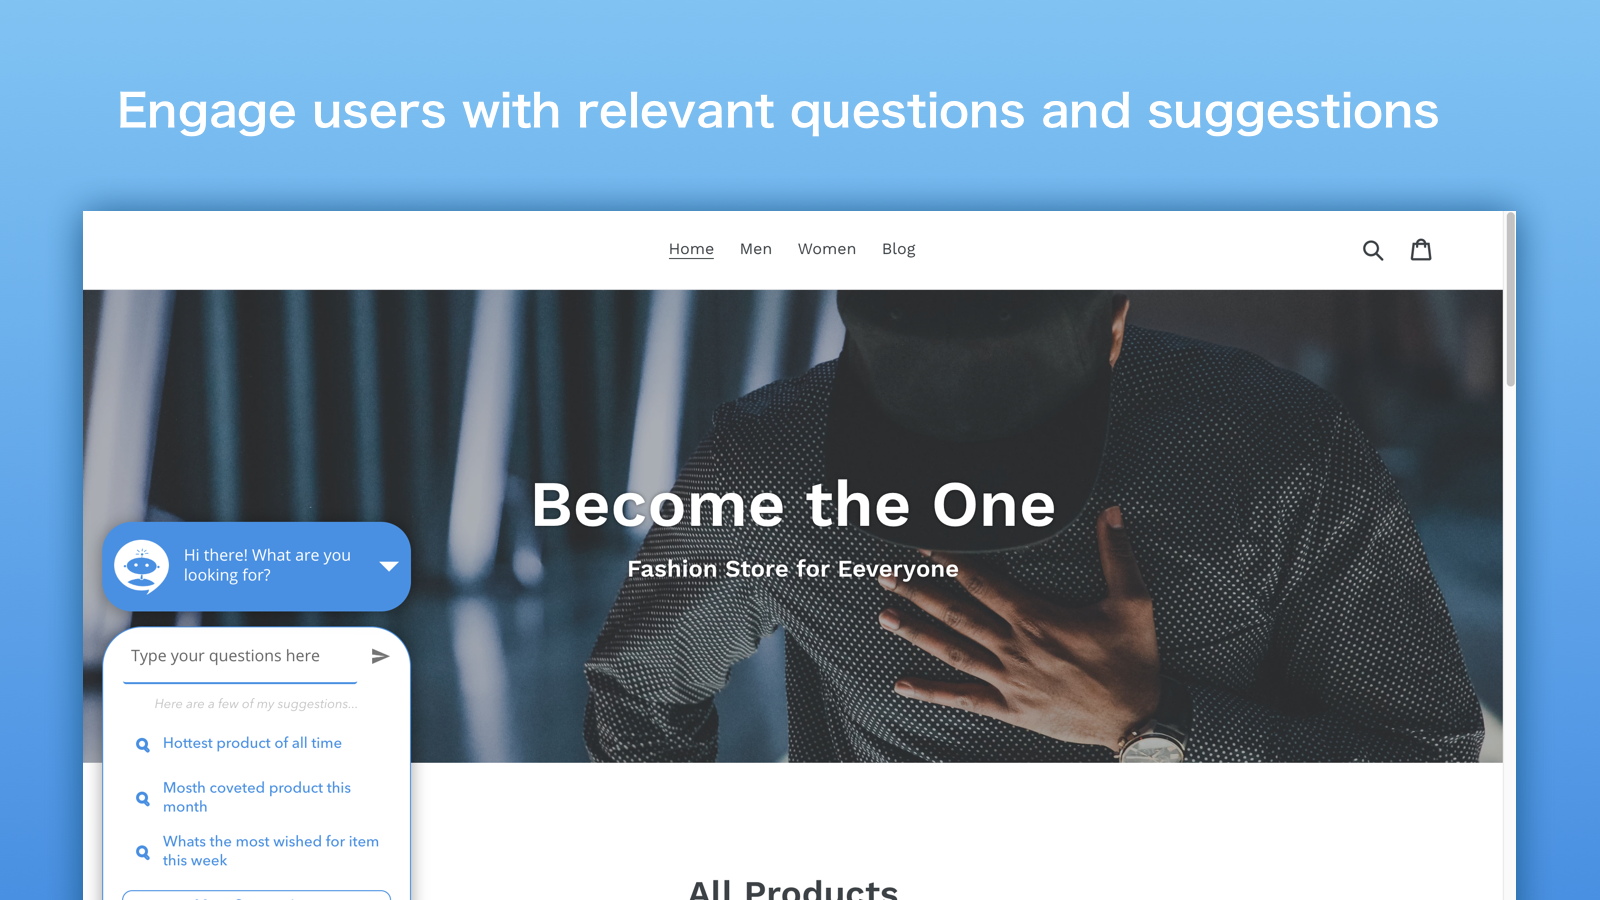 Engage users with relevant questions and suggestions